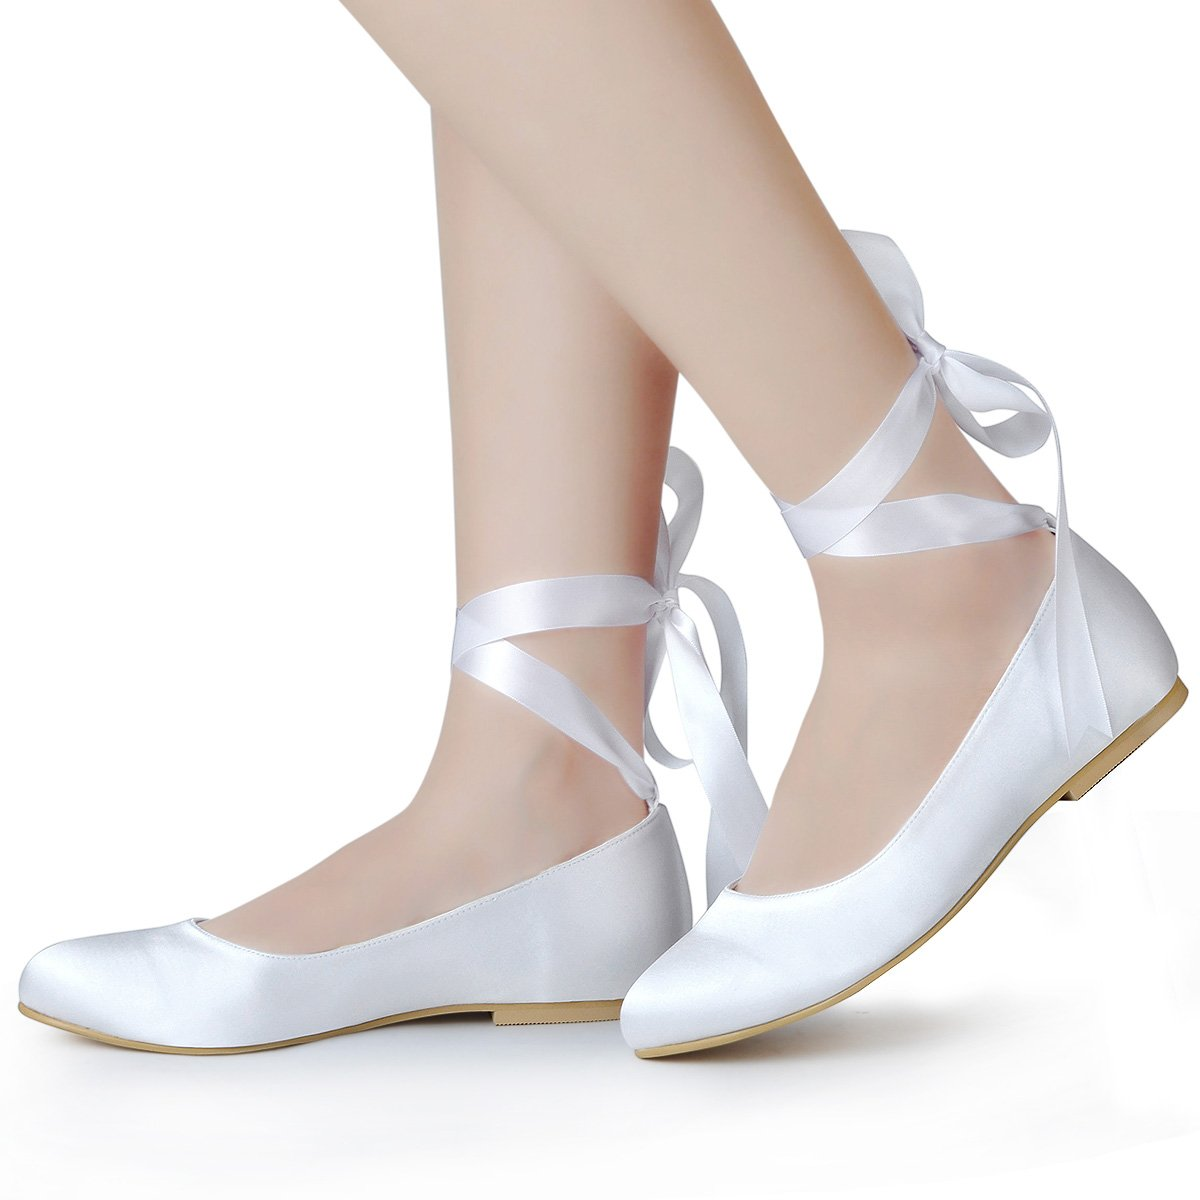 Vintage Wedding Shoes, Flats, Boots, Heels ElegantPark Women Comfort Flats Closed Toe Ribbon Tie Satin Wedding Bridal Shoes $42.95 AT vintagedancer.com